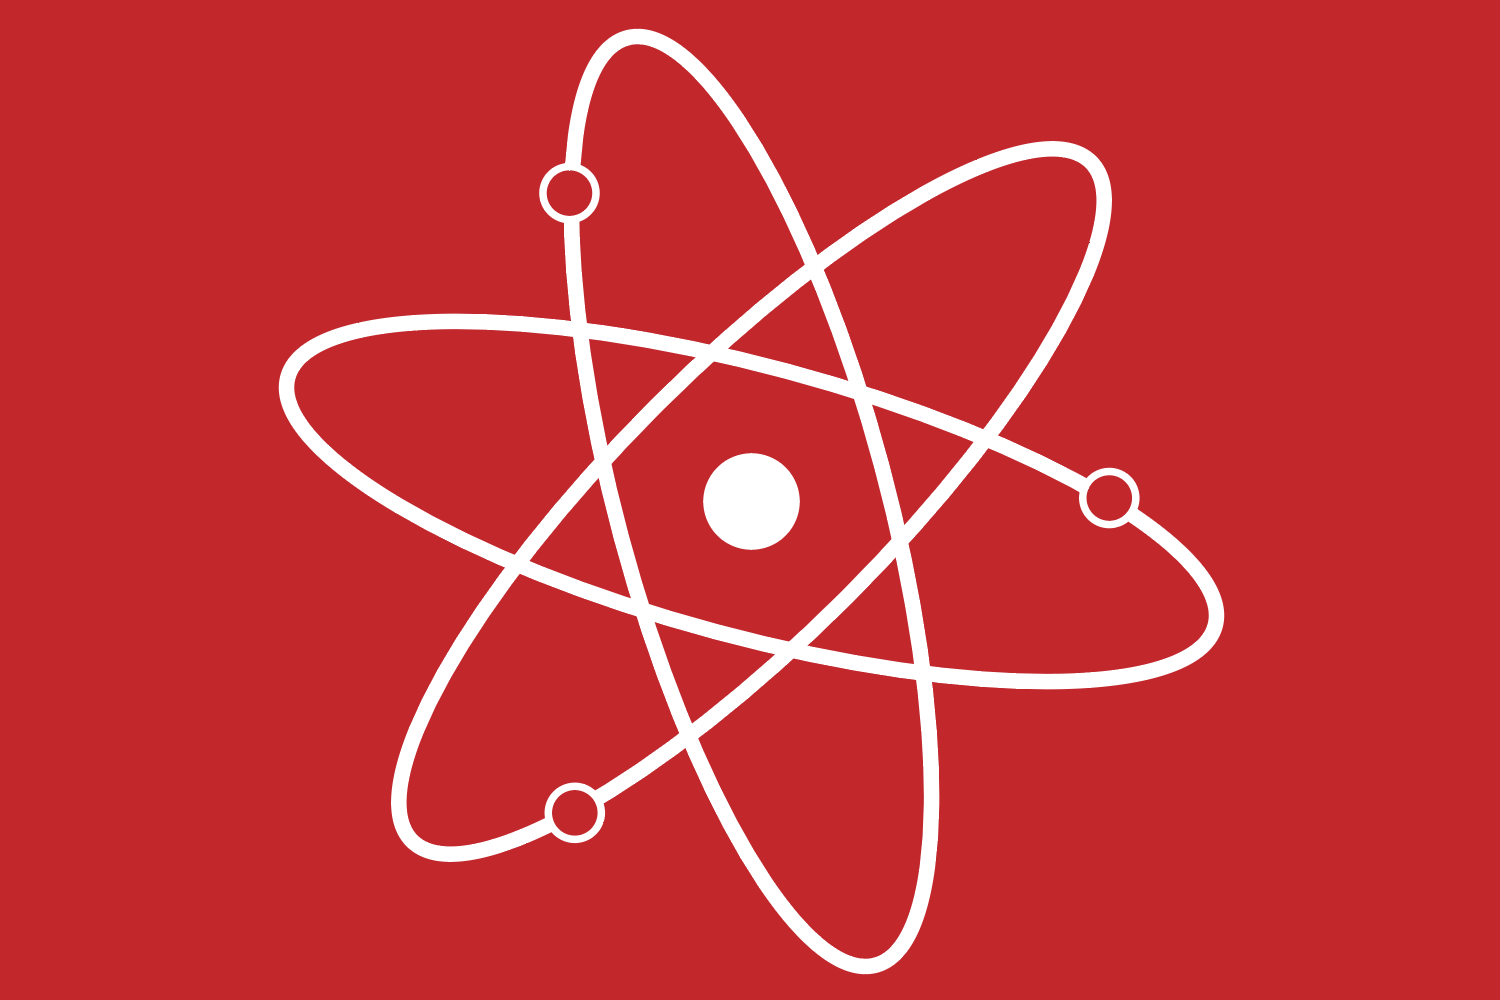 Make an atom symbol with dynamic effects in adobe illustrator a make an atom symbol with dynamic effects in adobe illustrator biocorpaavc Images